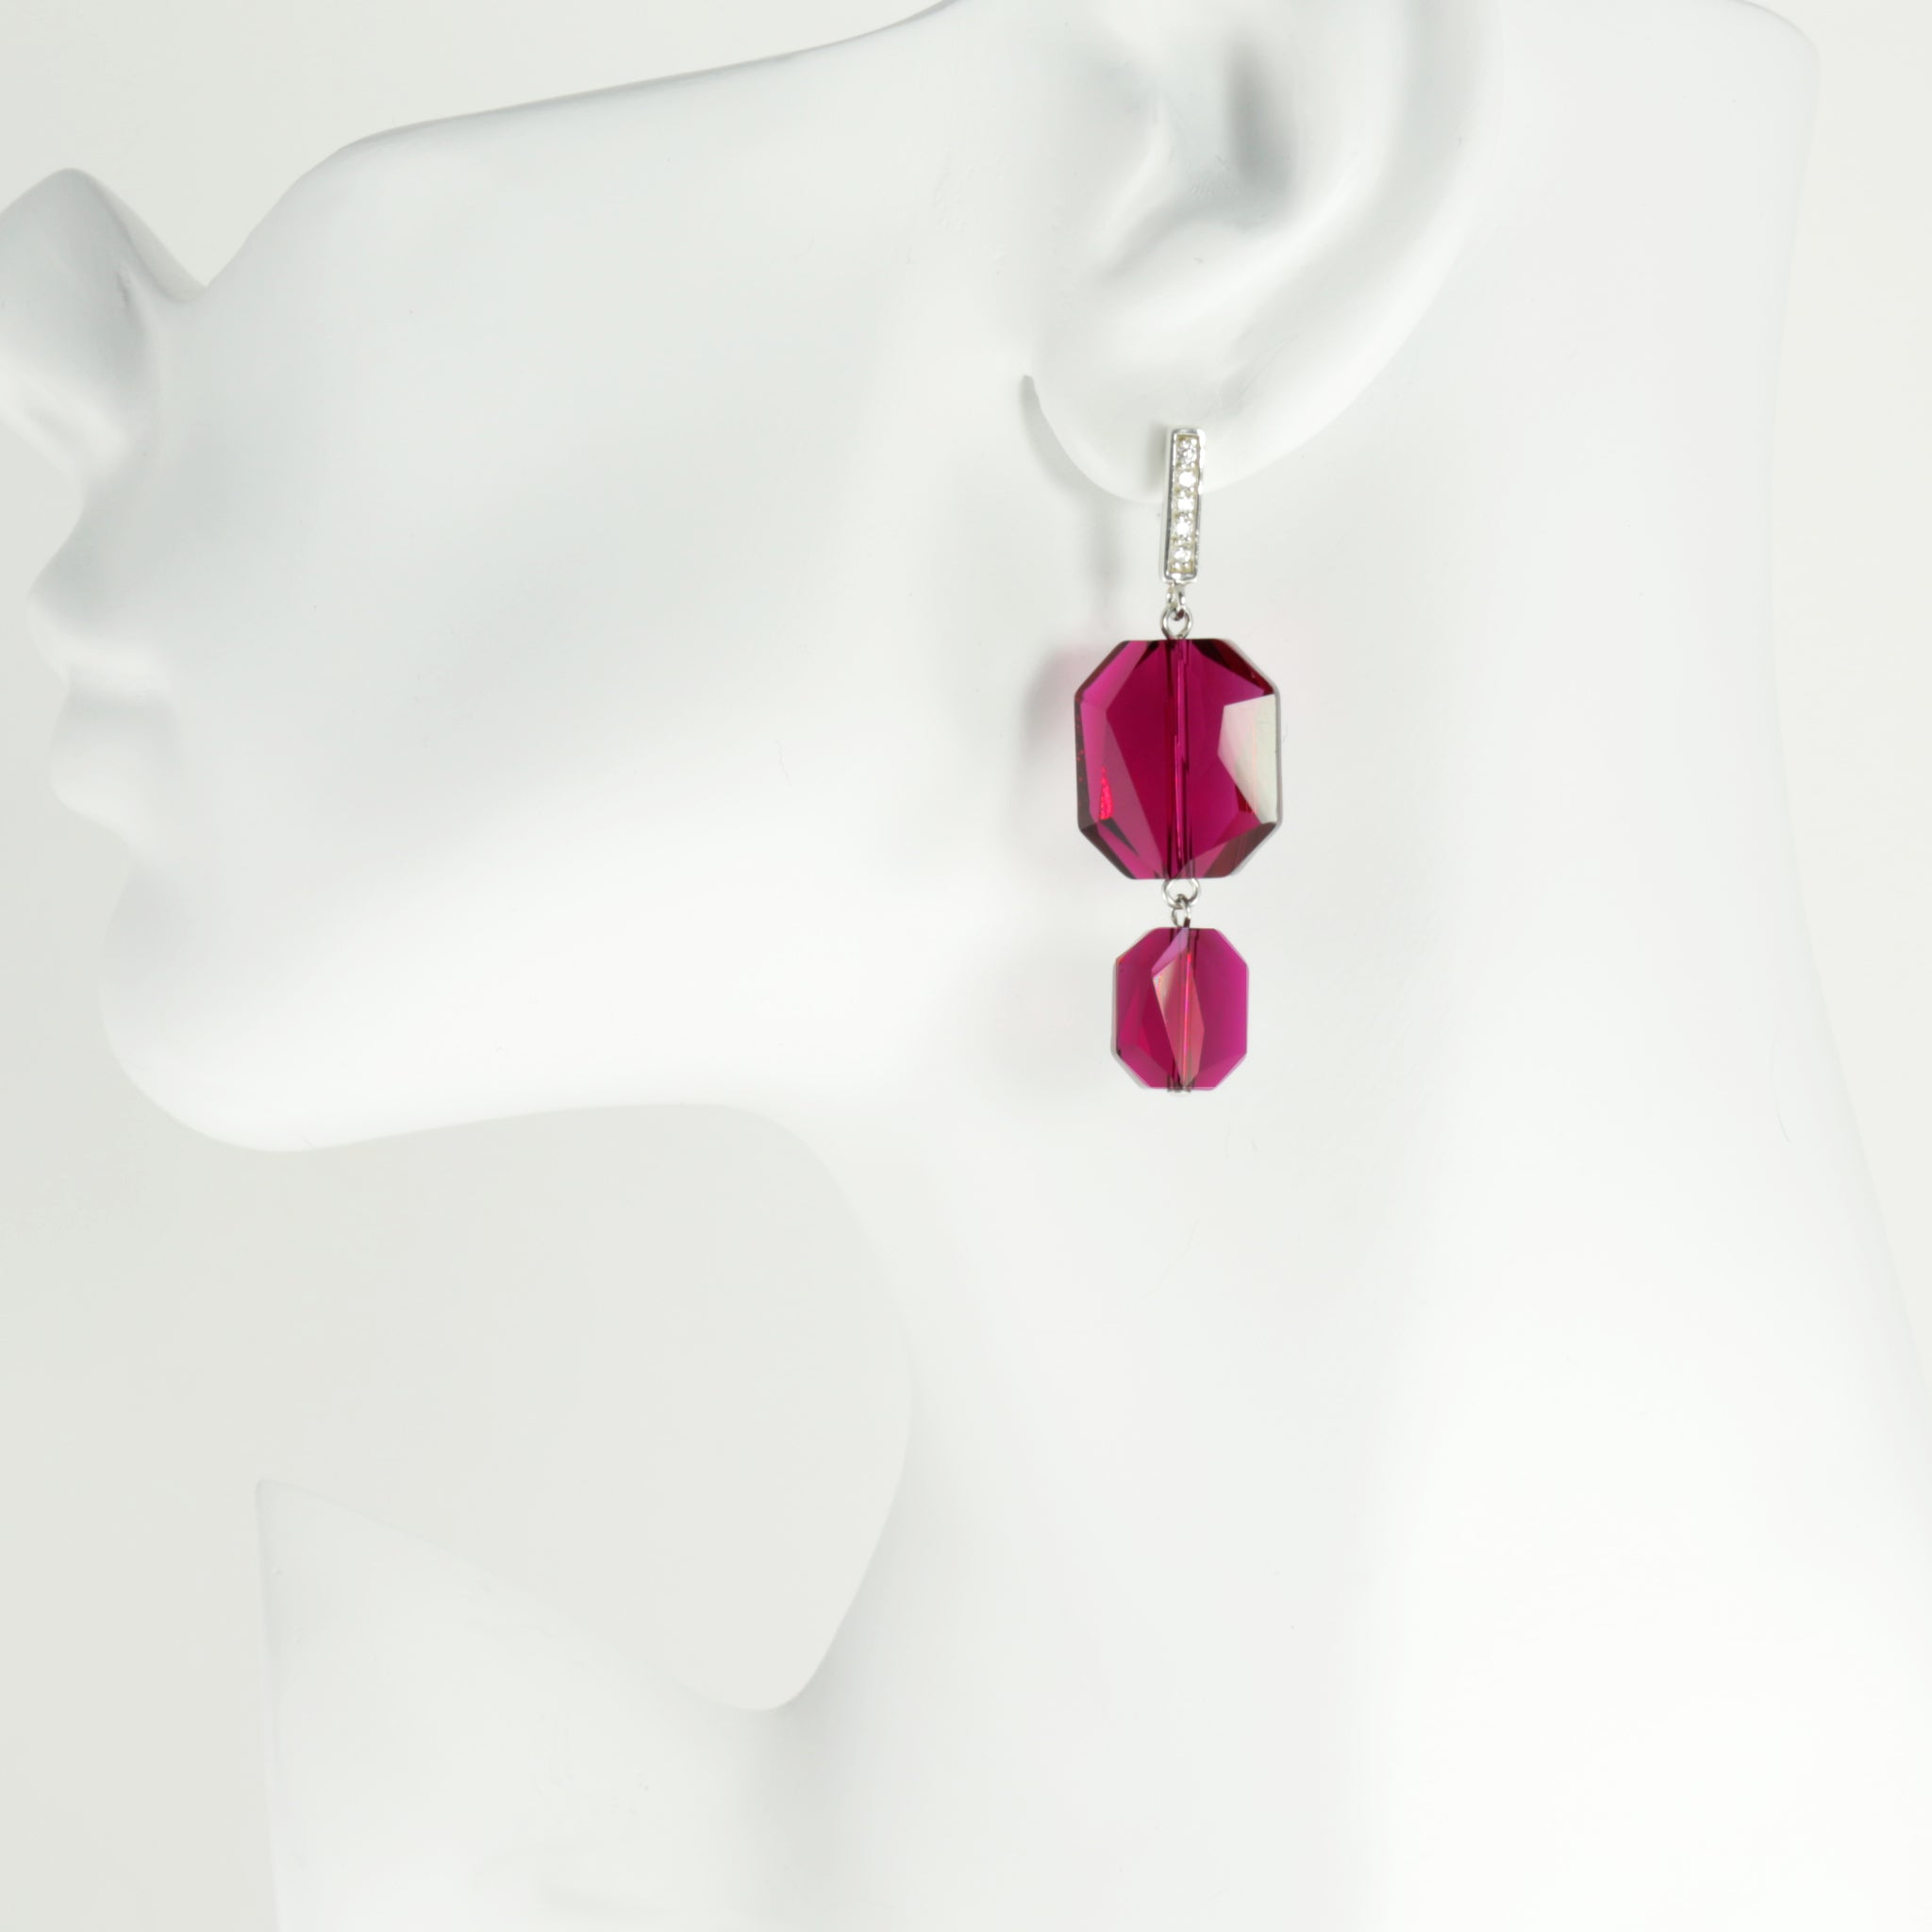 Plaza Earrings in Ruby